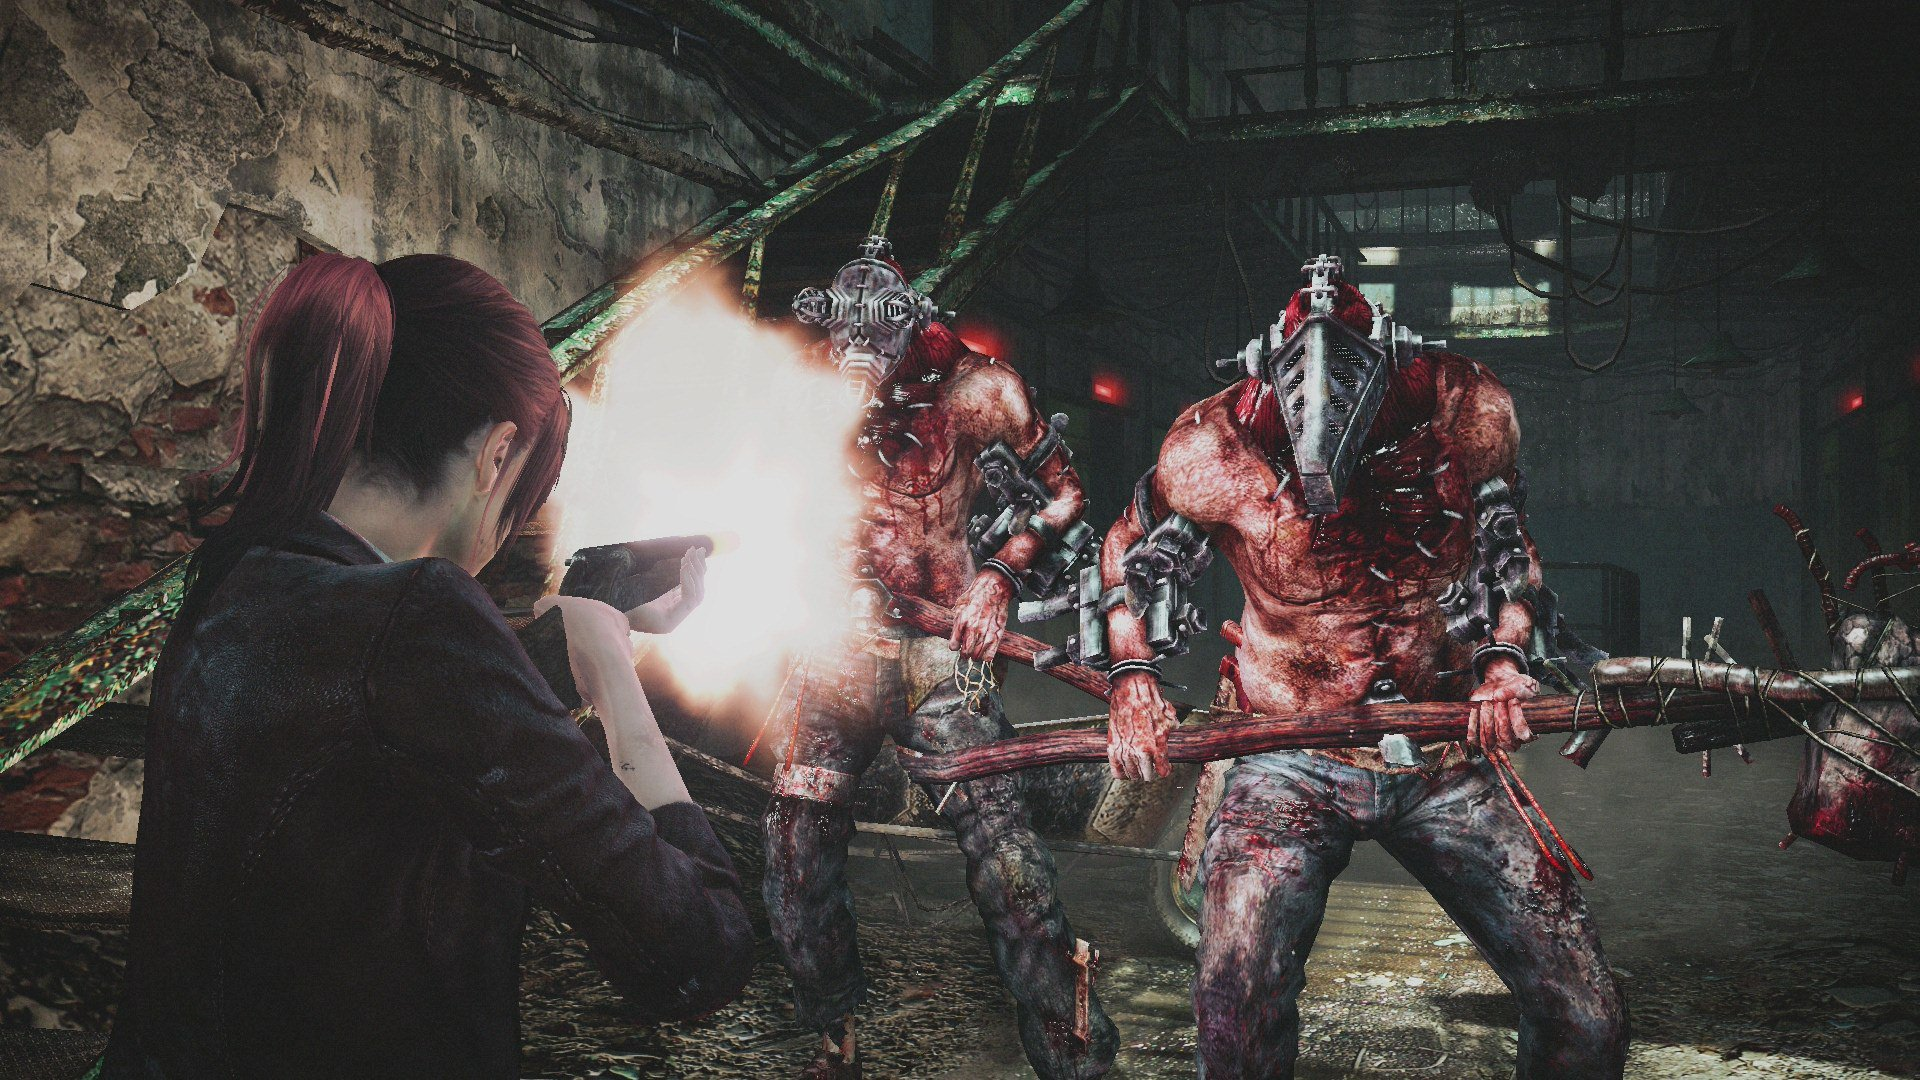 http://www.perfectly-nintendo.com/wp-content/gallery/resident-evil-revelations-07-09-2017/015a.jpg